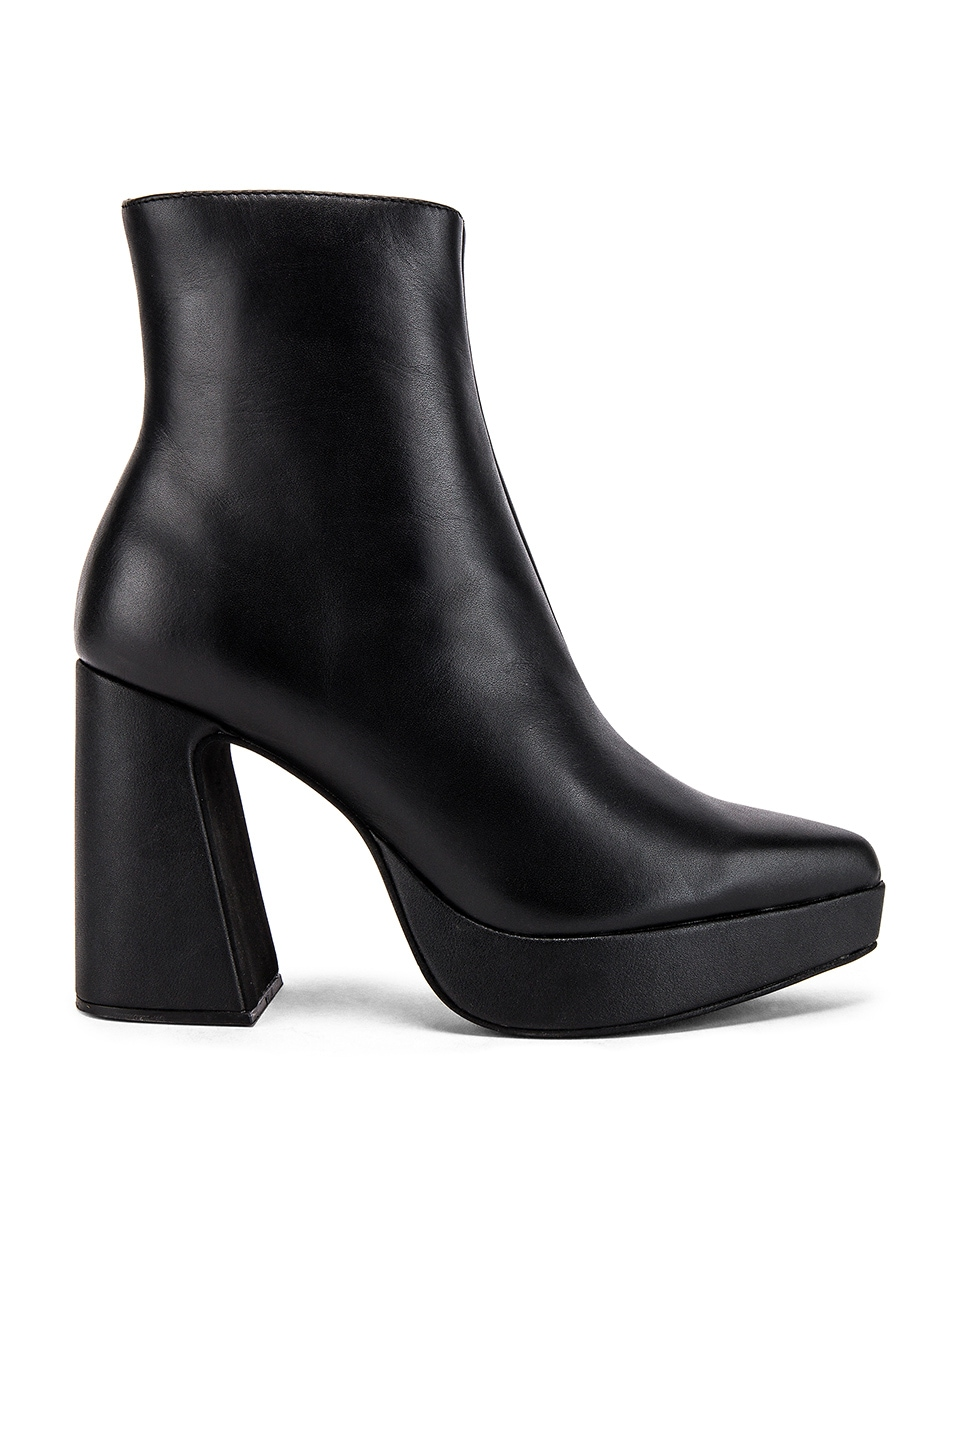 Jeffrey Campbell Dormant Bootie in Black